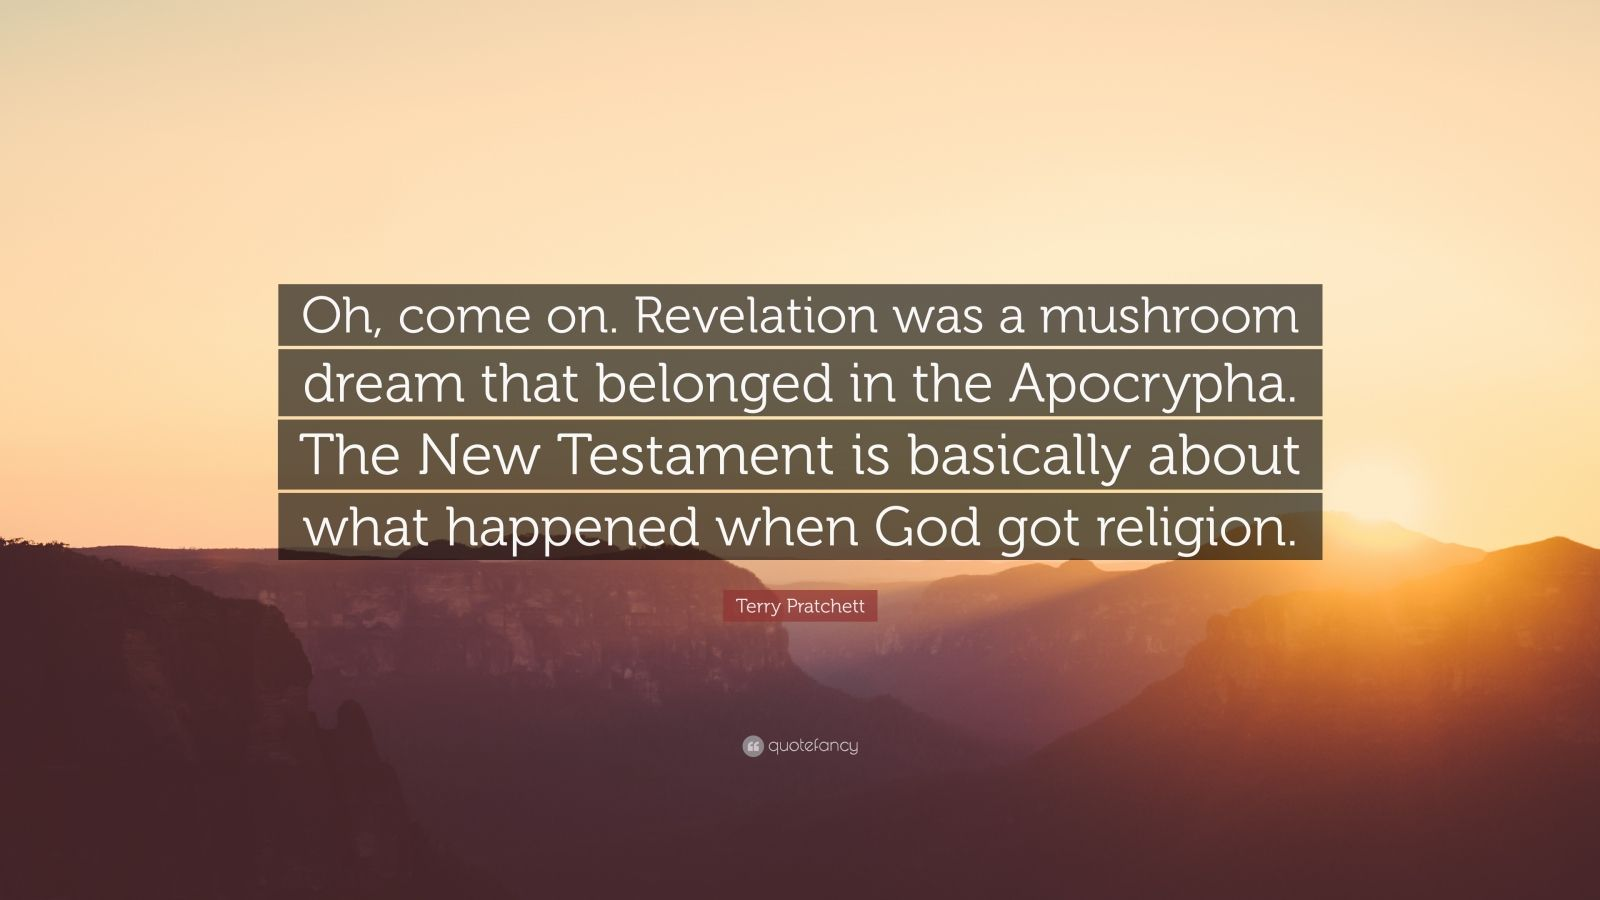 terry pratchett quote oh come on revelation was a